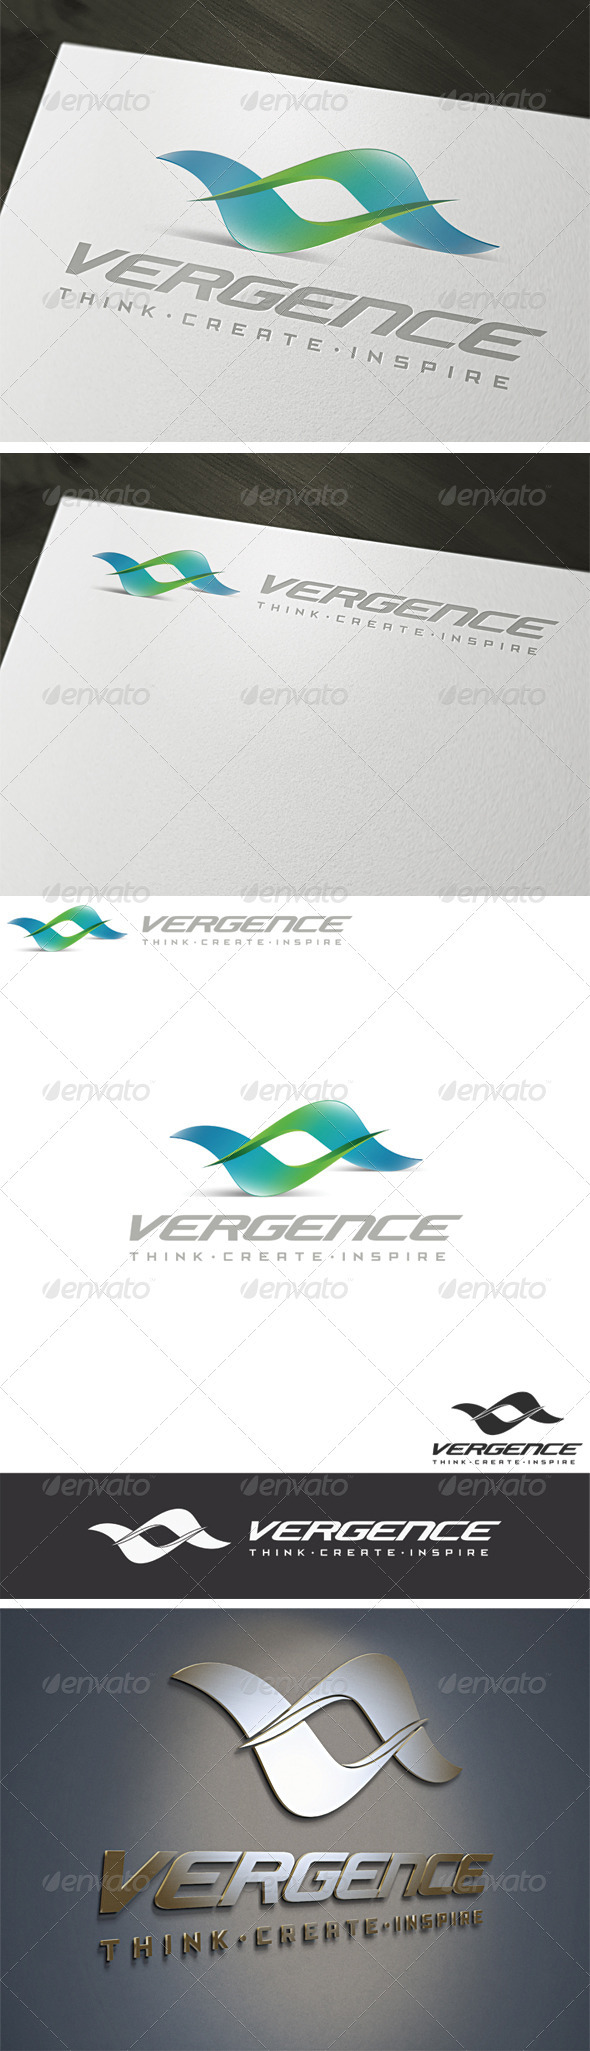 GraphicRiver 3D Vergence Logo Template 2237325